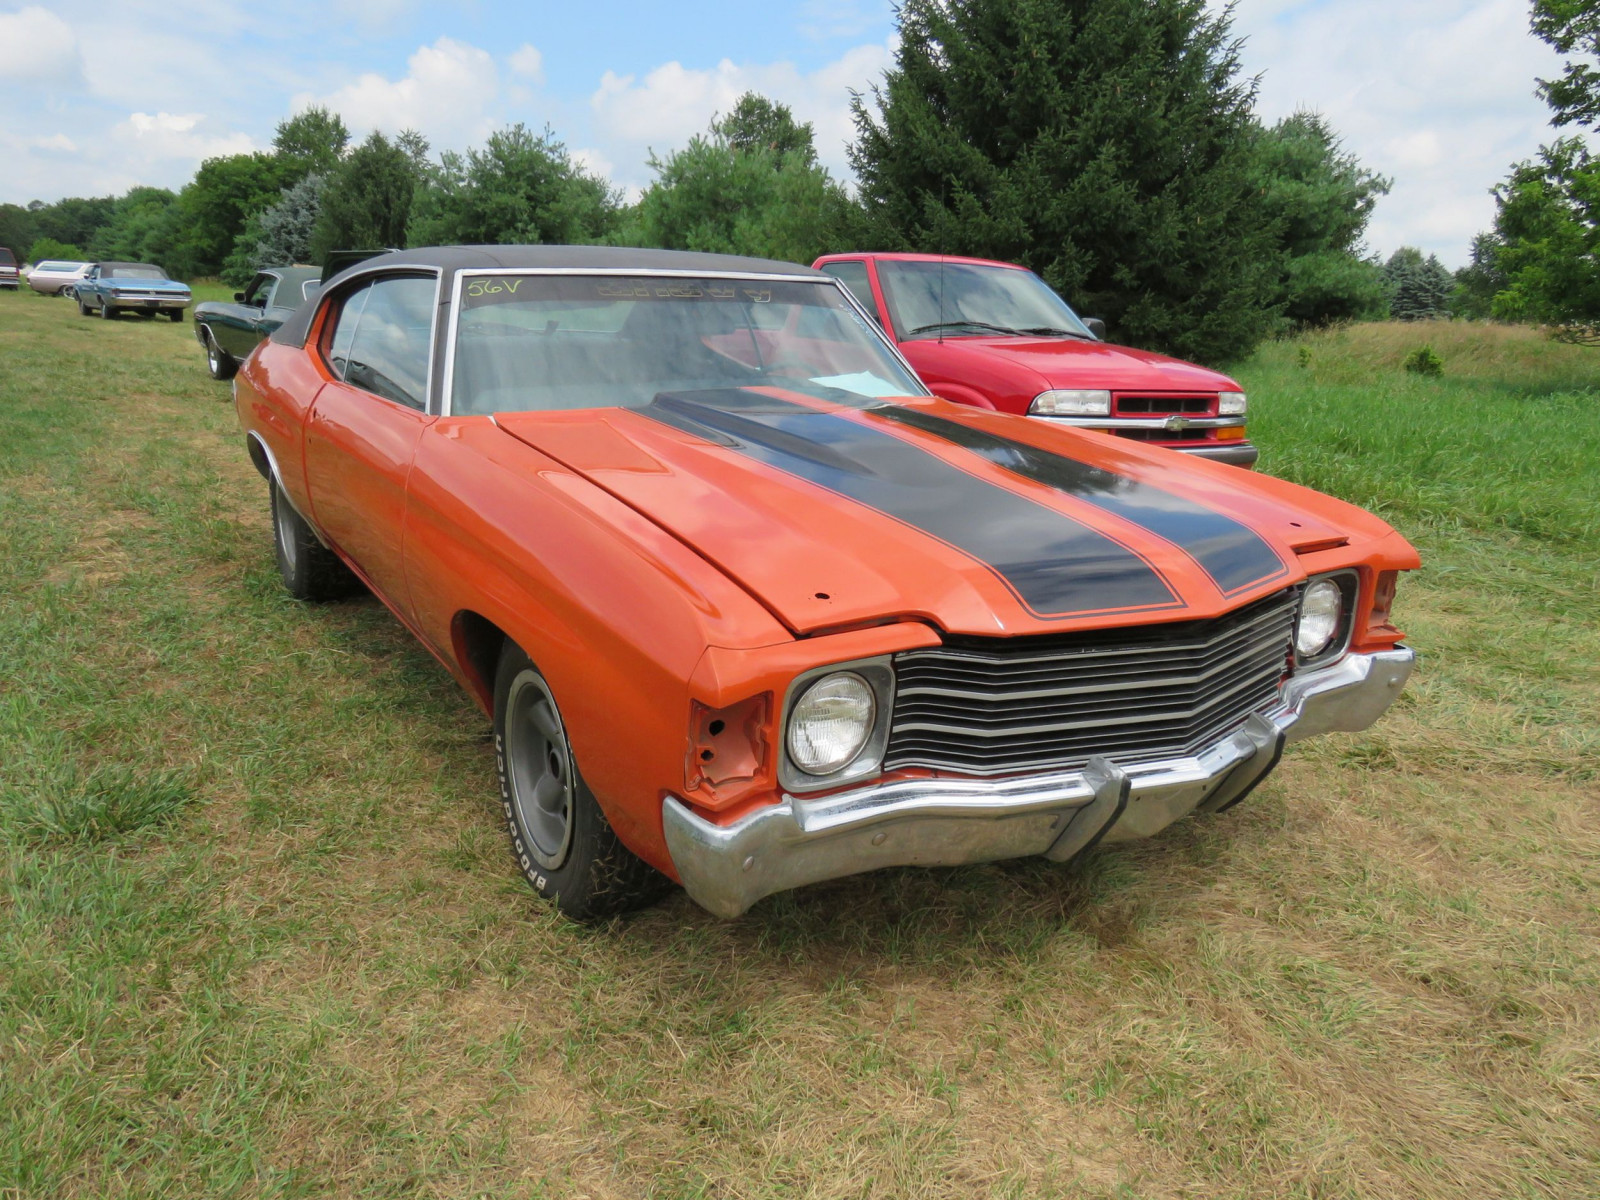 1972 Chevrolet Chevelle 2dr Coupe Rolling Body - Image 1